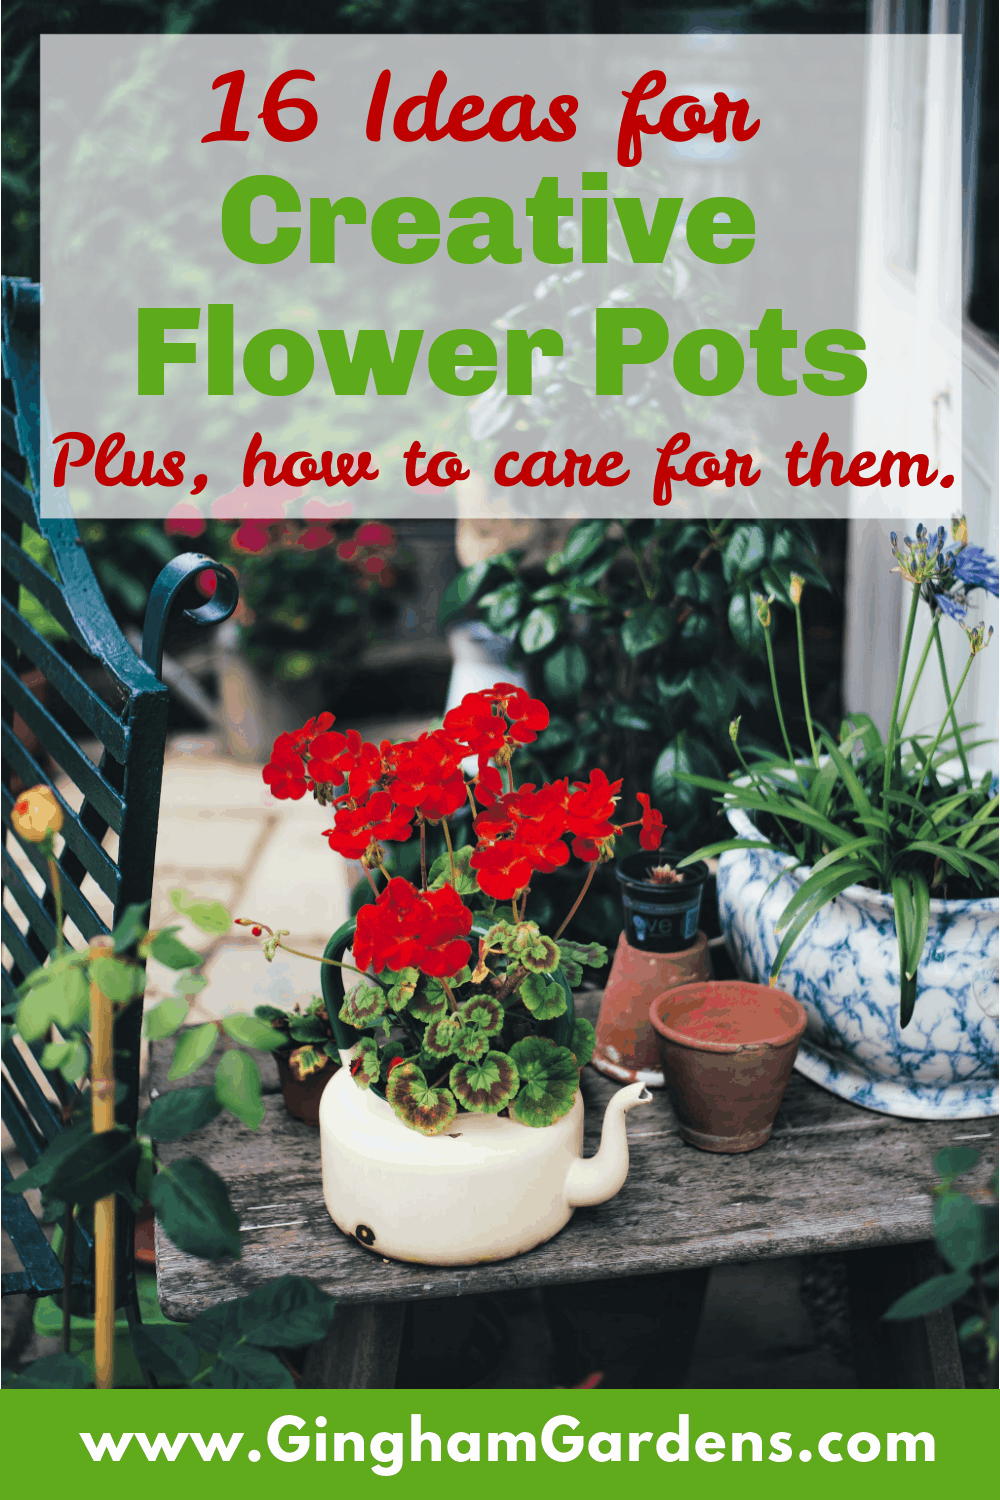 Image of a flower container garden with text overlay - 16 creative ideas for flower container gardens